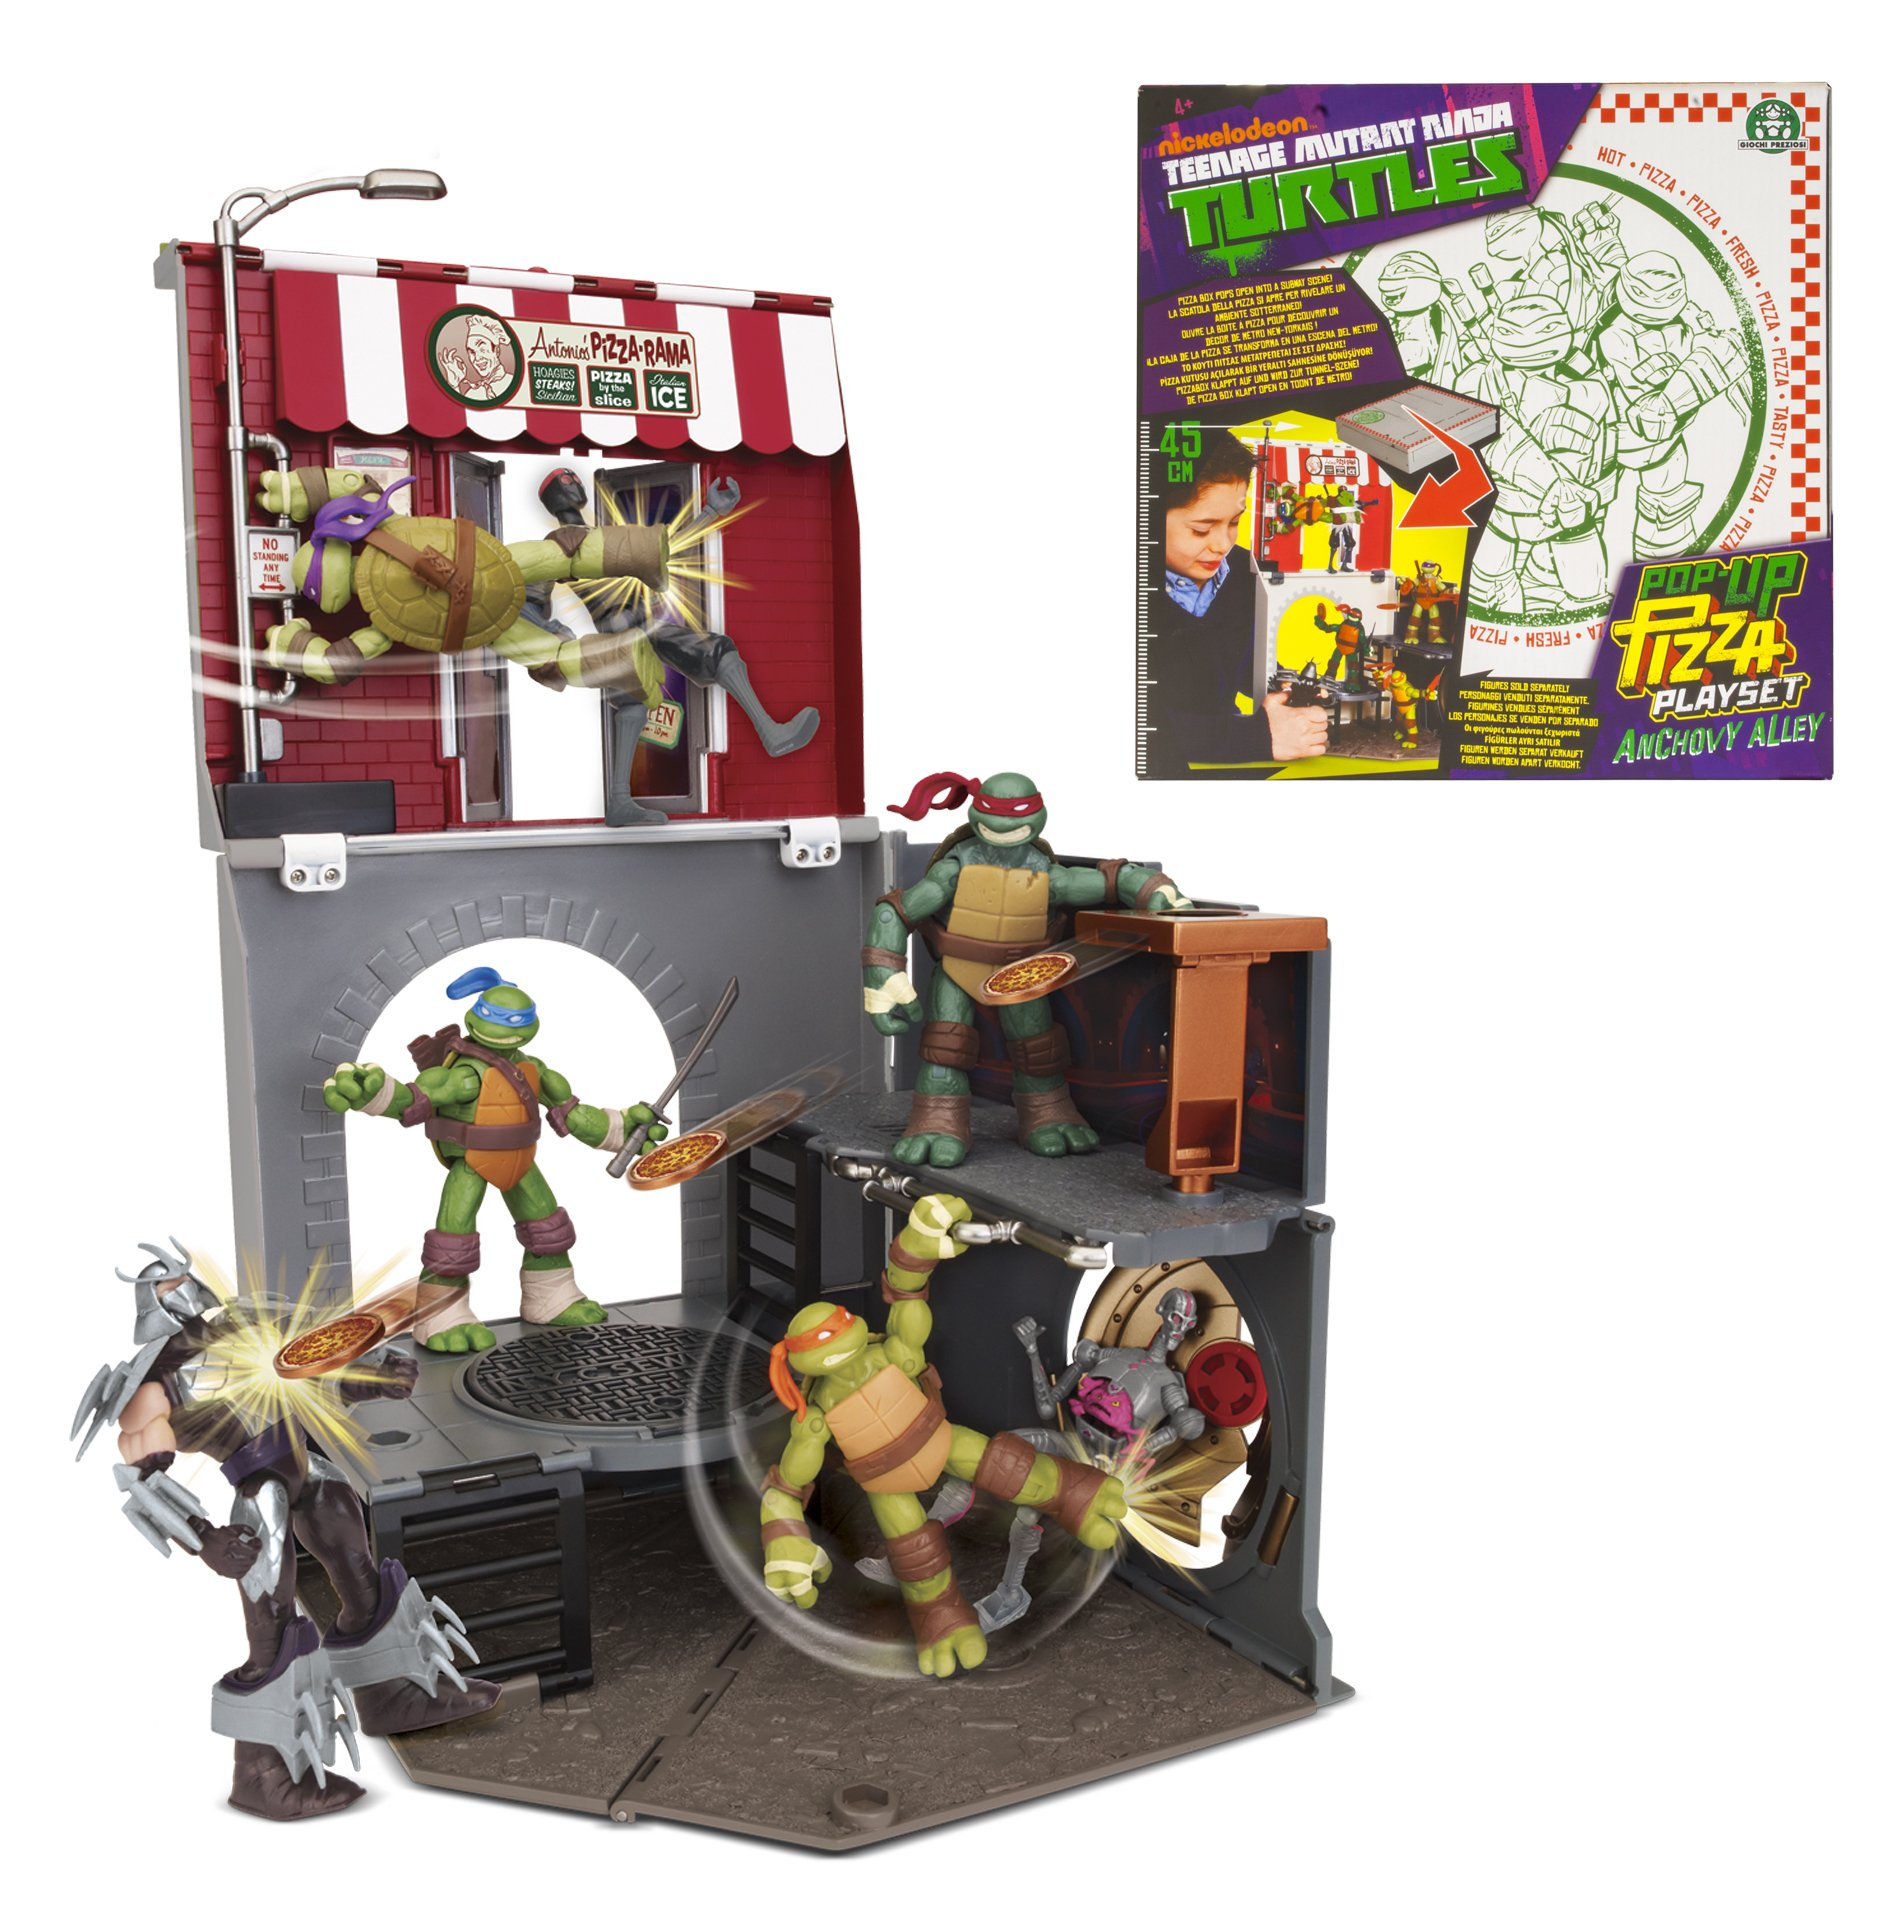 Teenage Mutant Ninja Turtles Pop-Up Pizza Anchovy Alley Playset